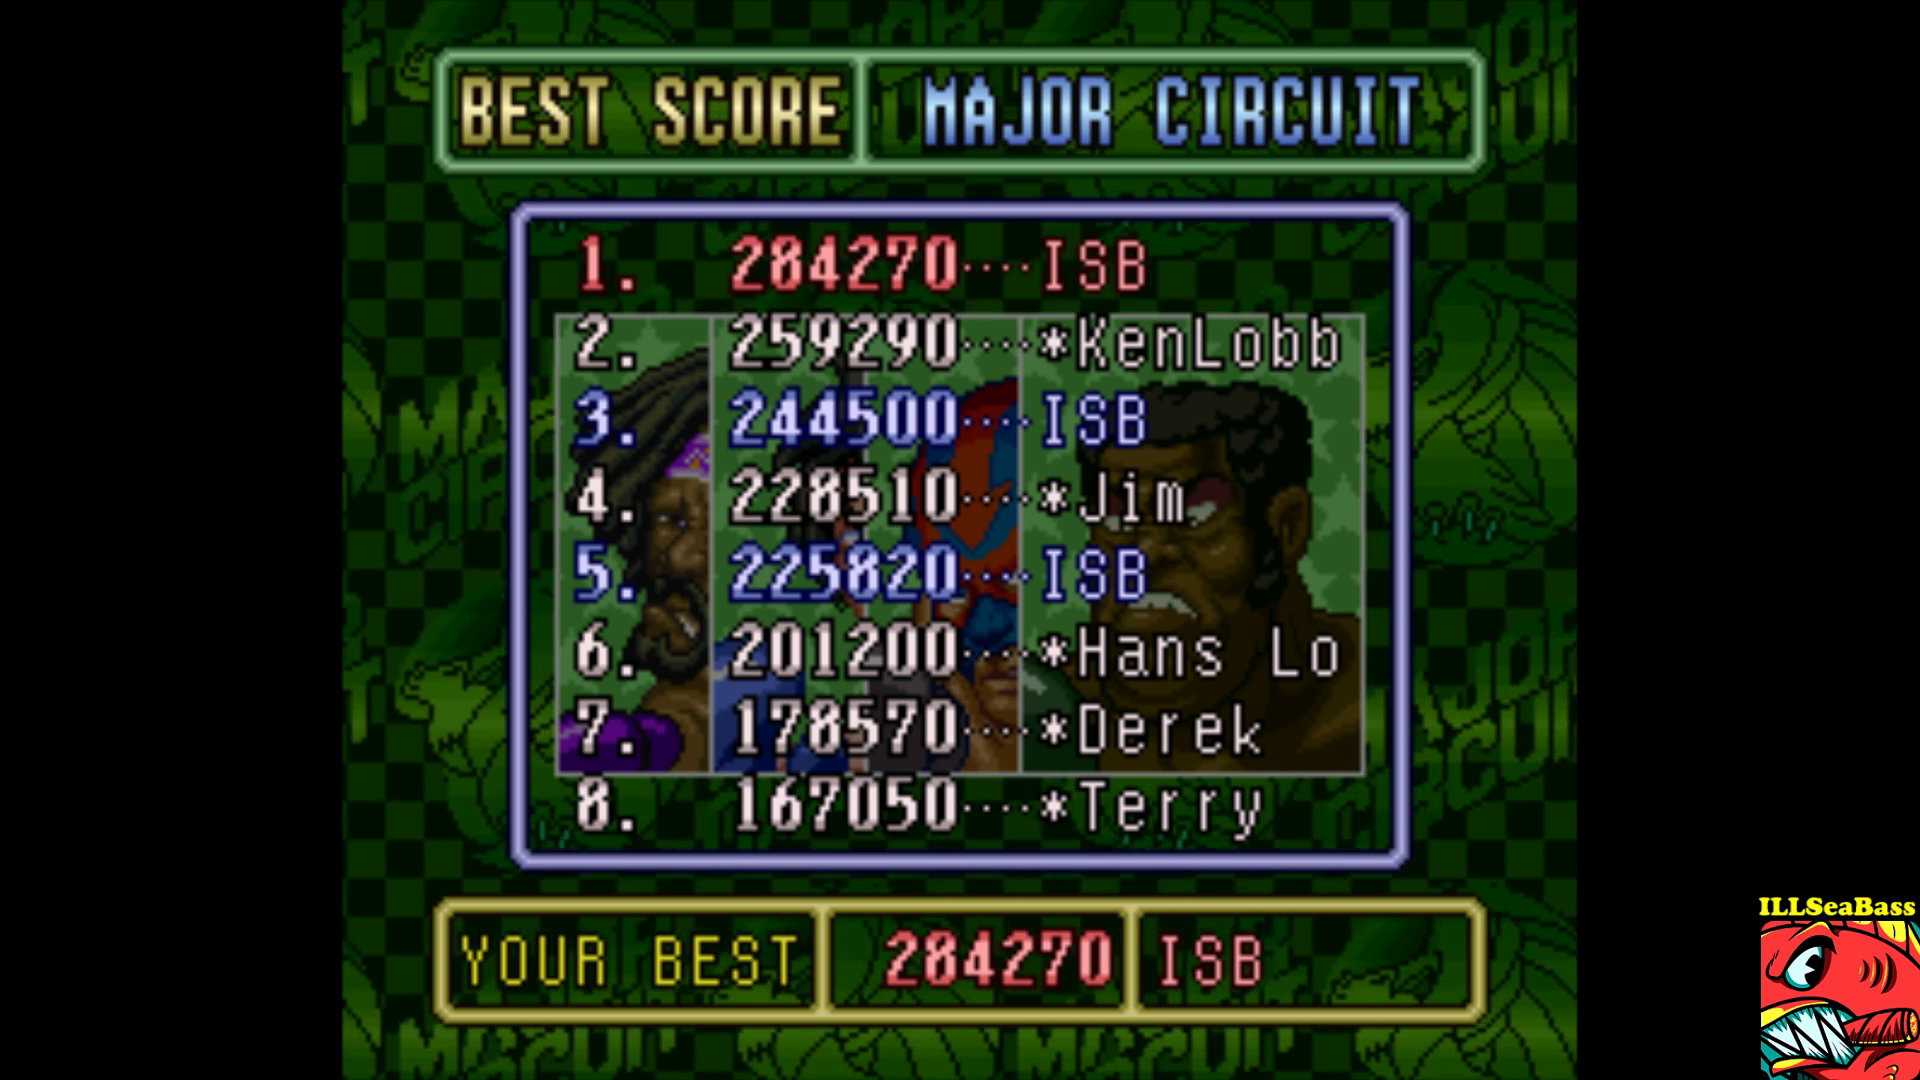 ILLSeaBass: Super Punch-Out!! [Major Circuit] (SNES/Super Famicom Emulated) 284,270 points on 2017-09-15 19:11:57